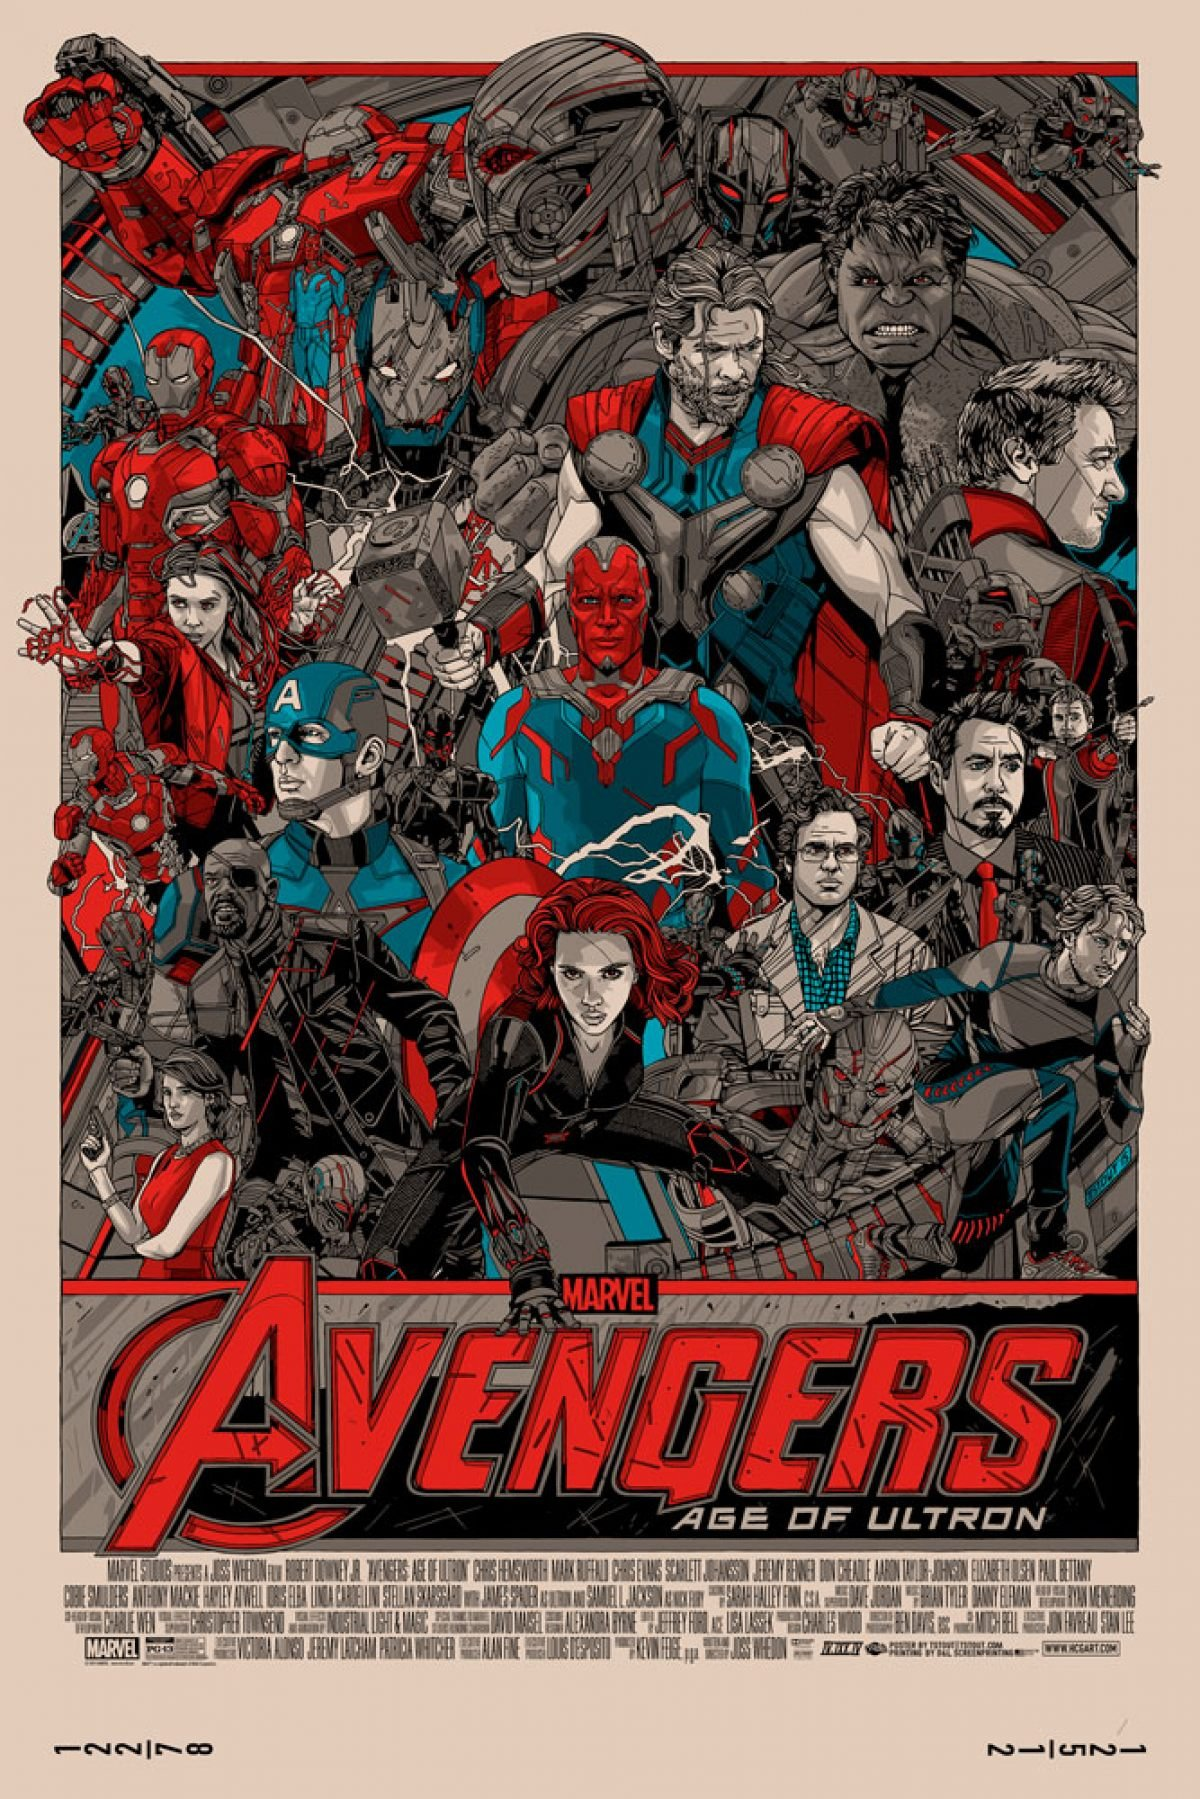 Tyler Stout Returns With A Crazy-Detailed AVENGERS: AGE OF ...